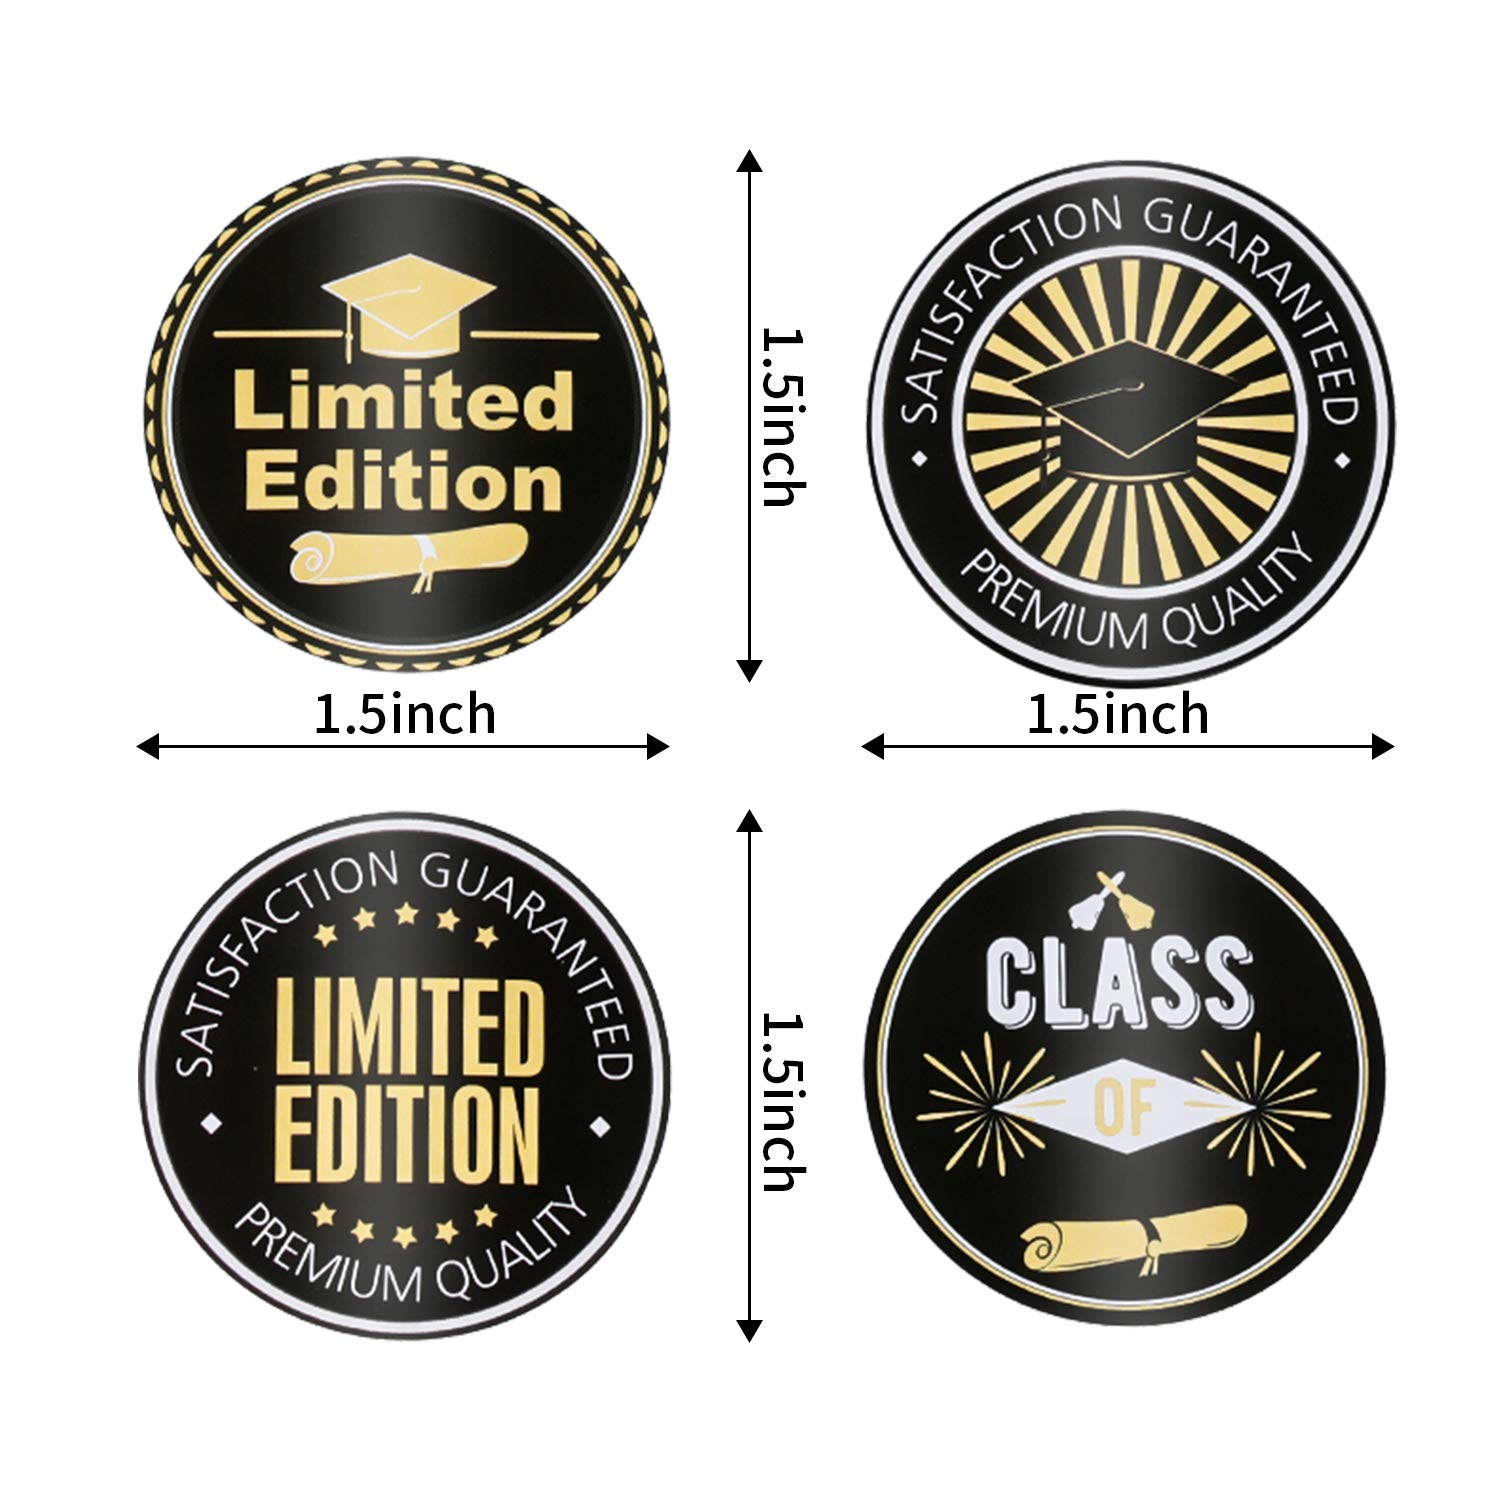 Graduation Stickers Graduation Envelope Sealing Sticker Self-Adhesive Gift Circle Label for Graduation Party Wrapping Supplies Style 1, 720 Pieces